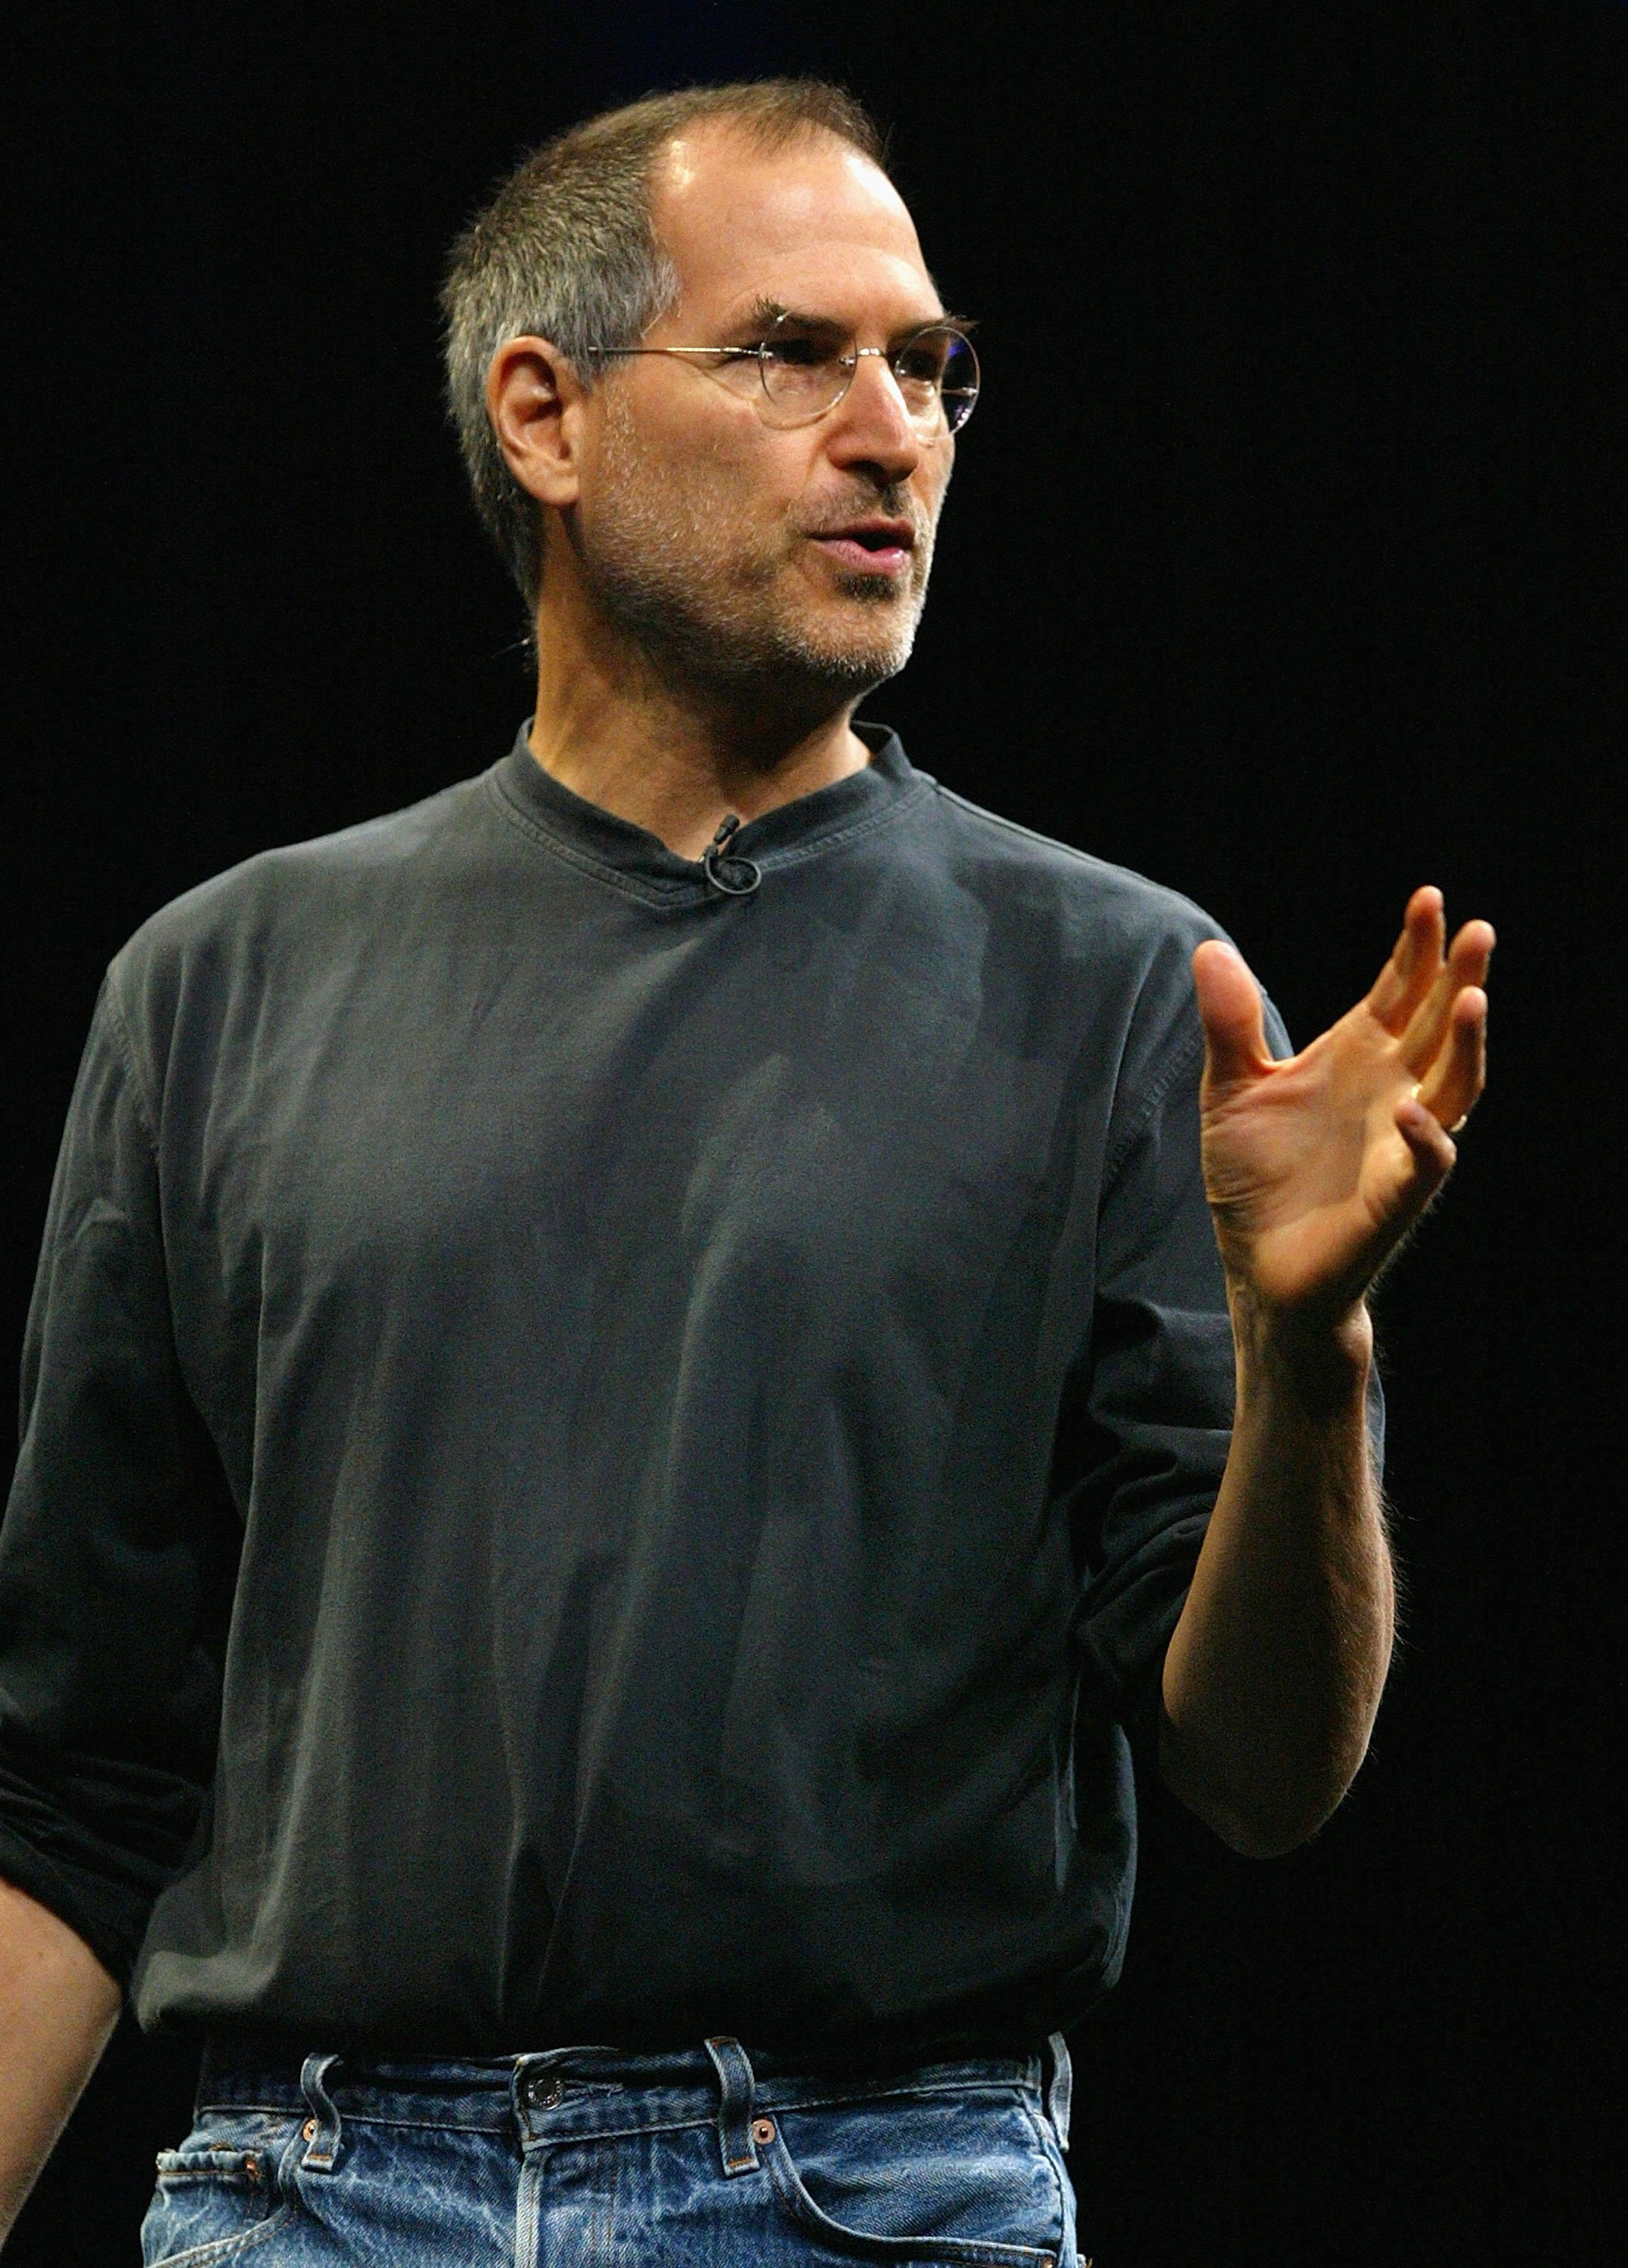 Steve Jobs delivers the keynote address at the 2004 Worldwide Developers Conference June 28, 2004, in San Francisco, California. | Source: Getty Images.